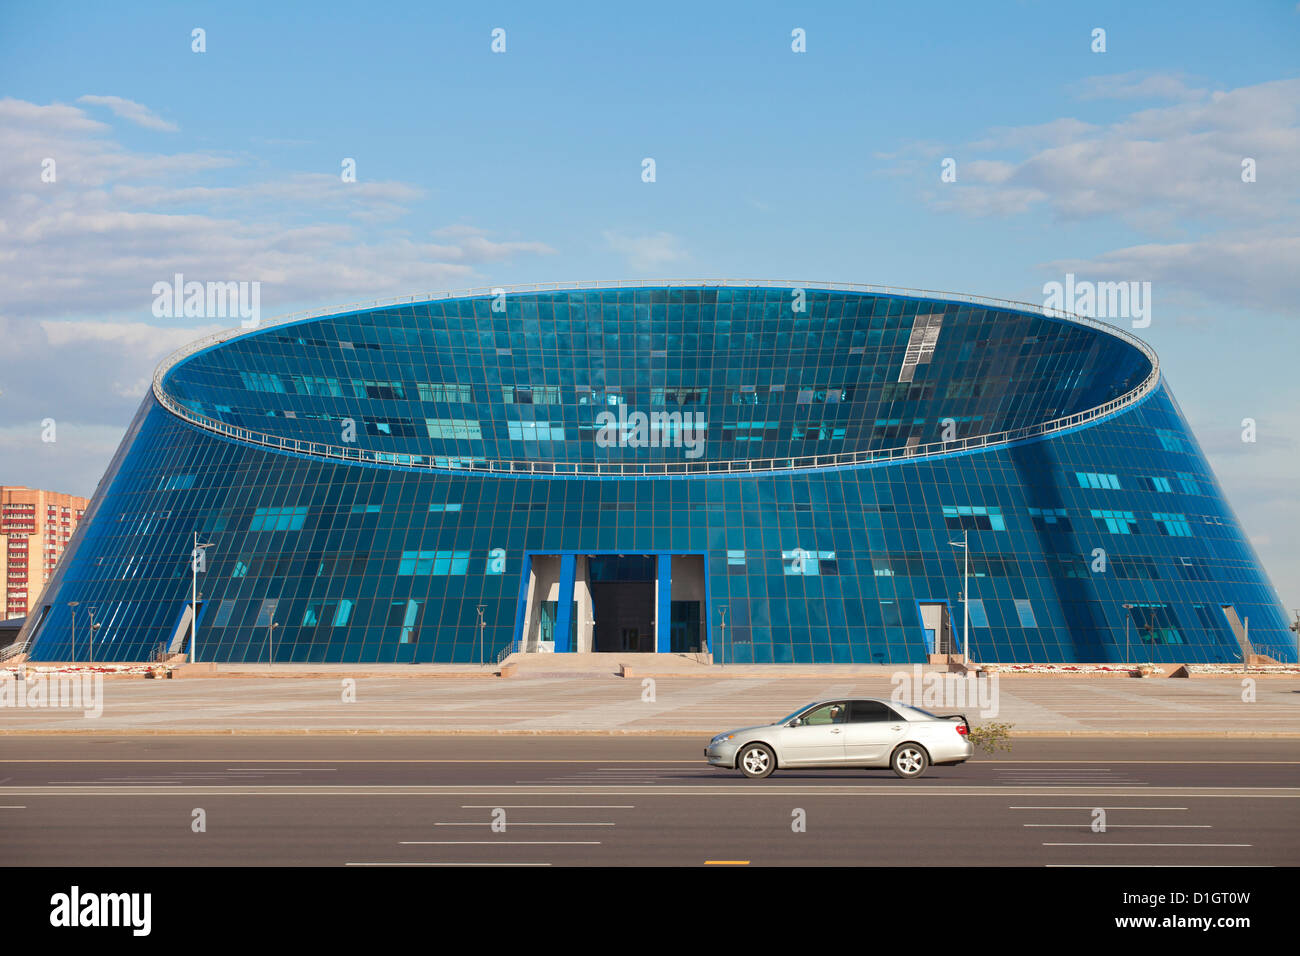 Shabyt Palace of Arts, Astana, Kazakhstan, Central Asia, Asia - Stock Image